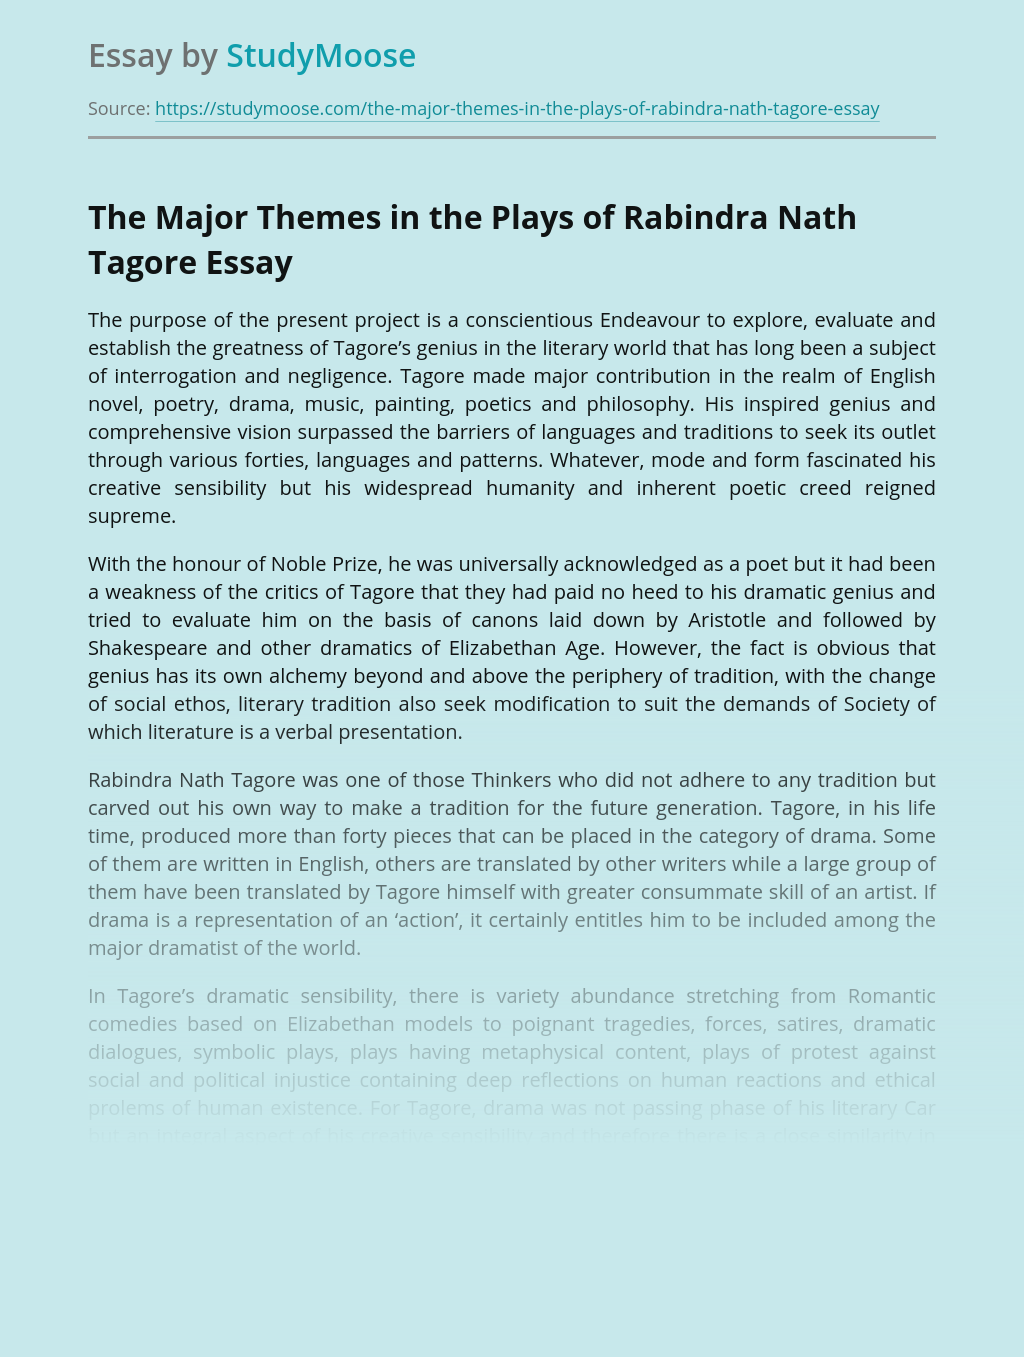 The Major Themes in the Plays of Rabindra Nath Tagore